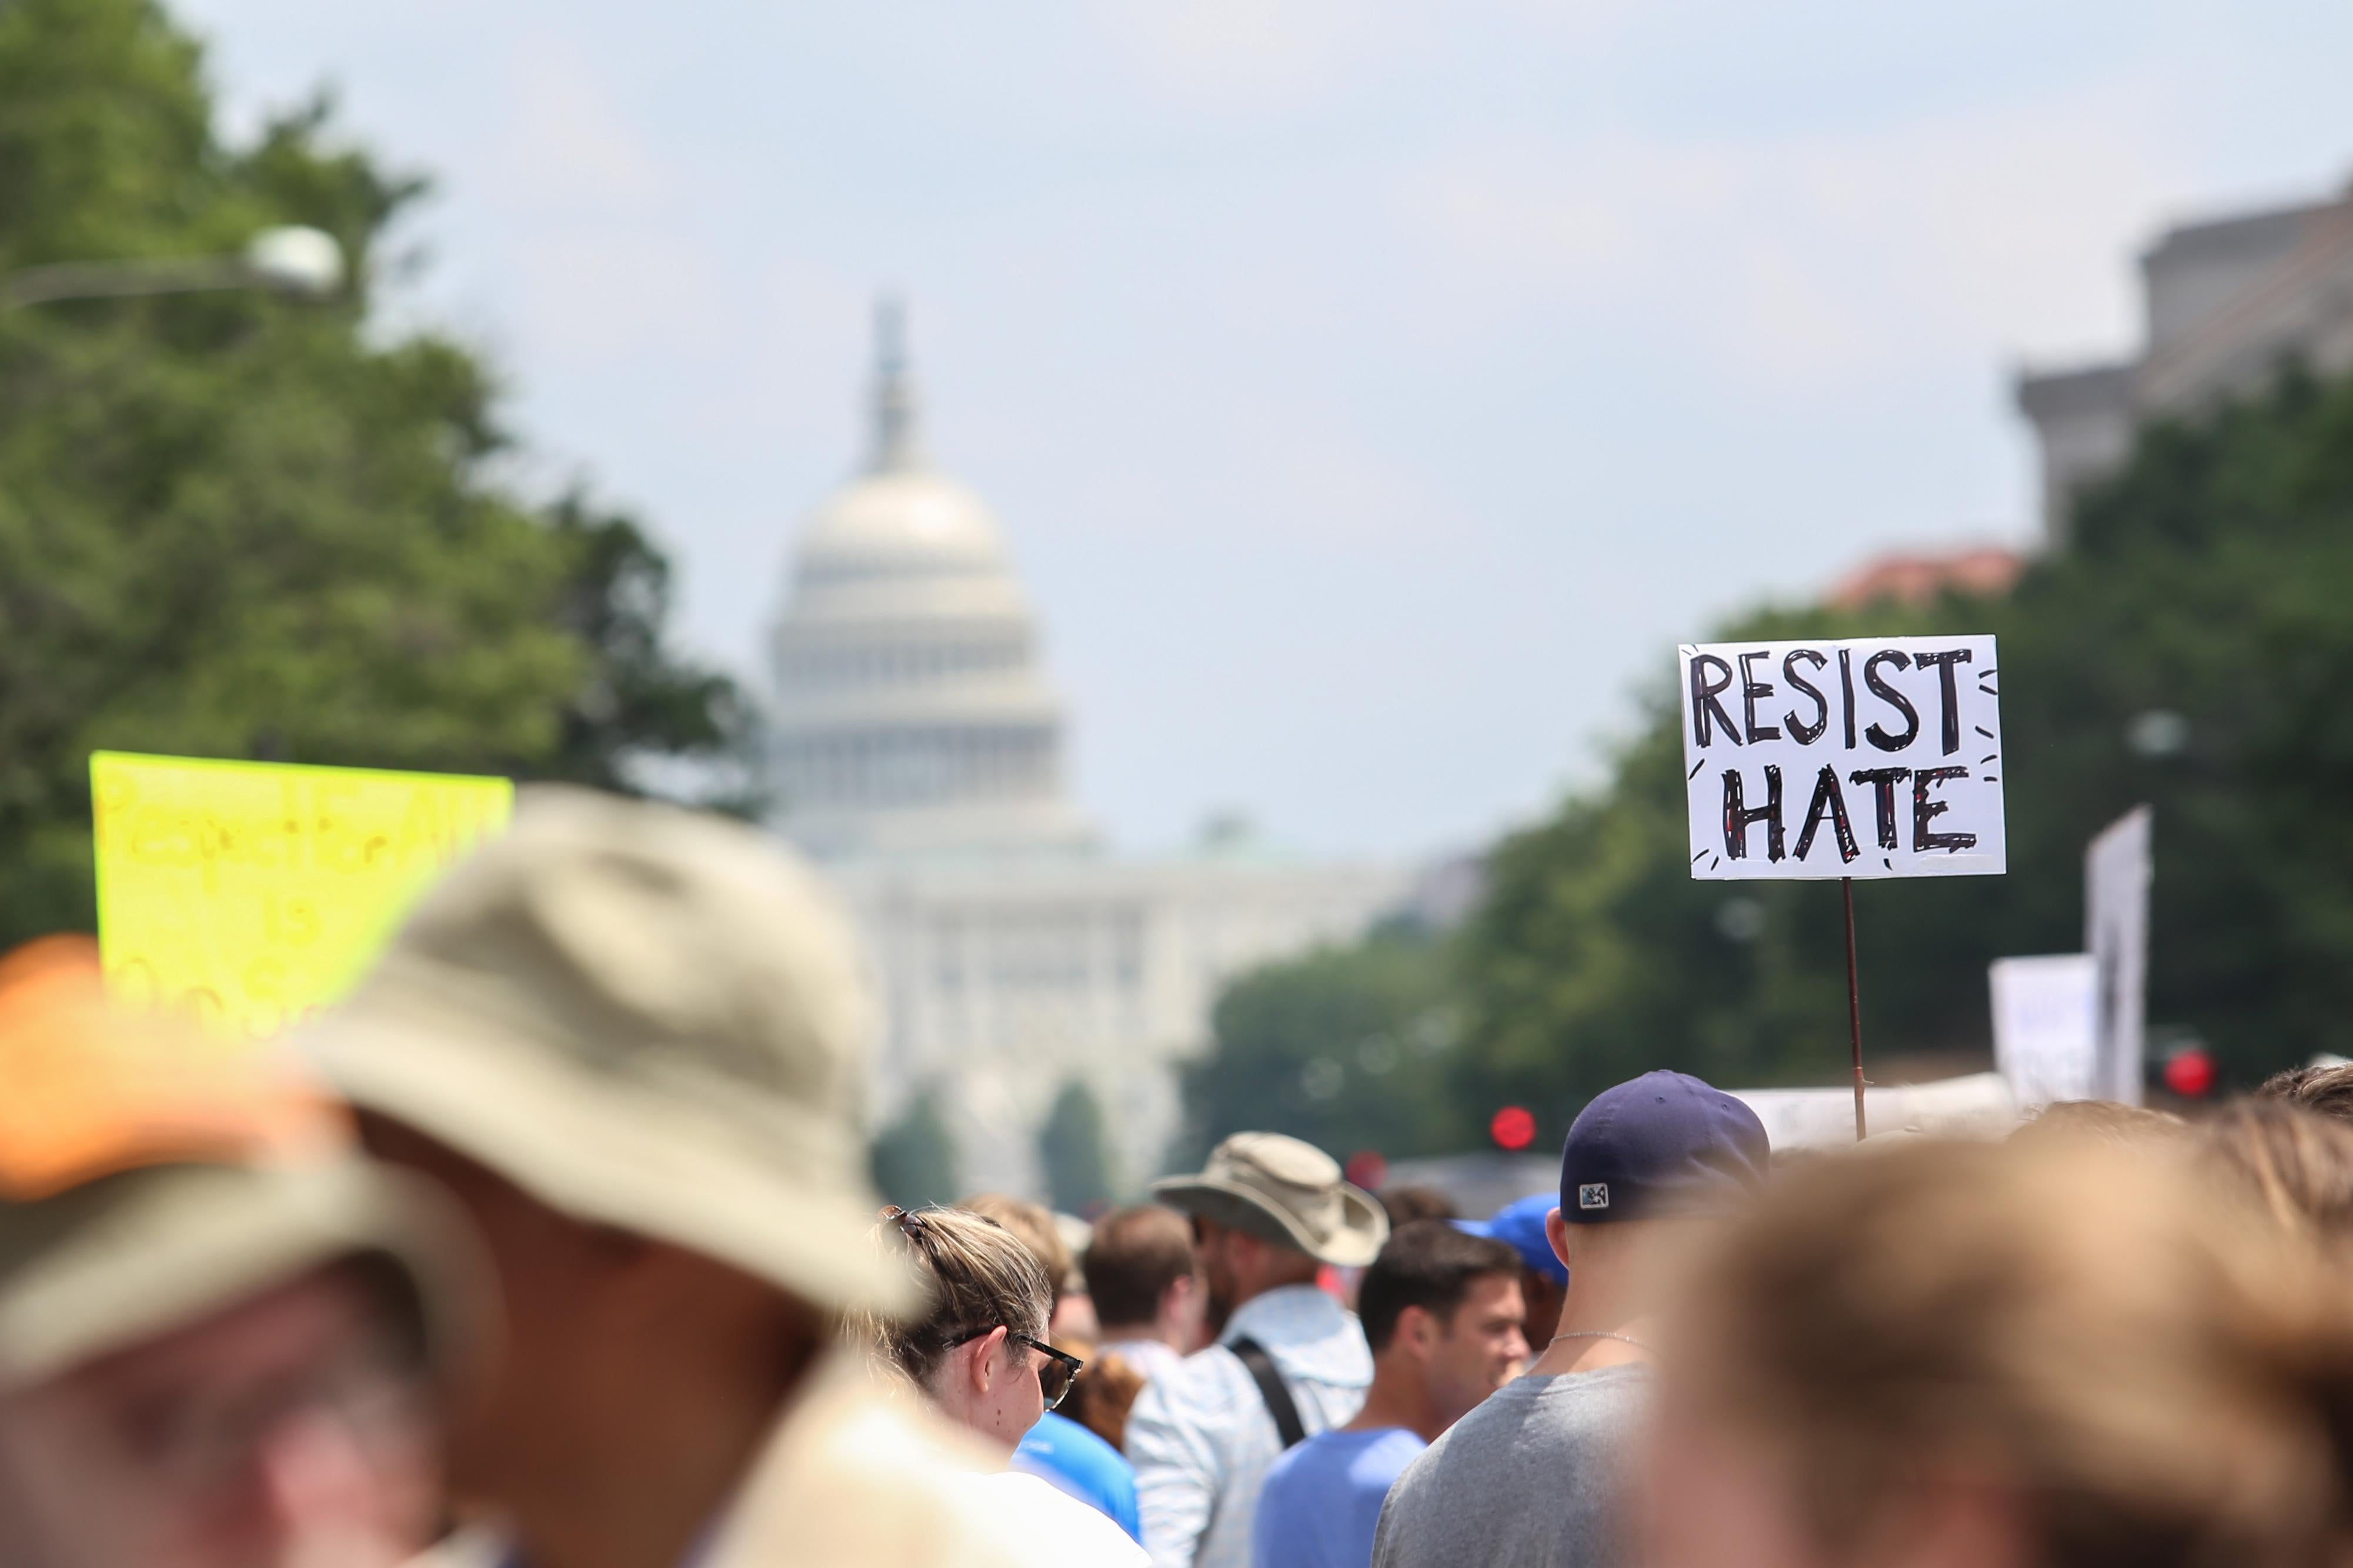 Counter-protesters gather at Freedom Plaza before the Unite the Right rally in Lafayette Park on August 12, 2018 in Washington, D.C.